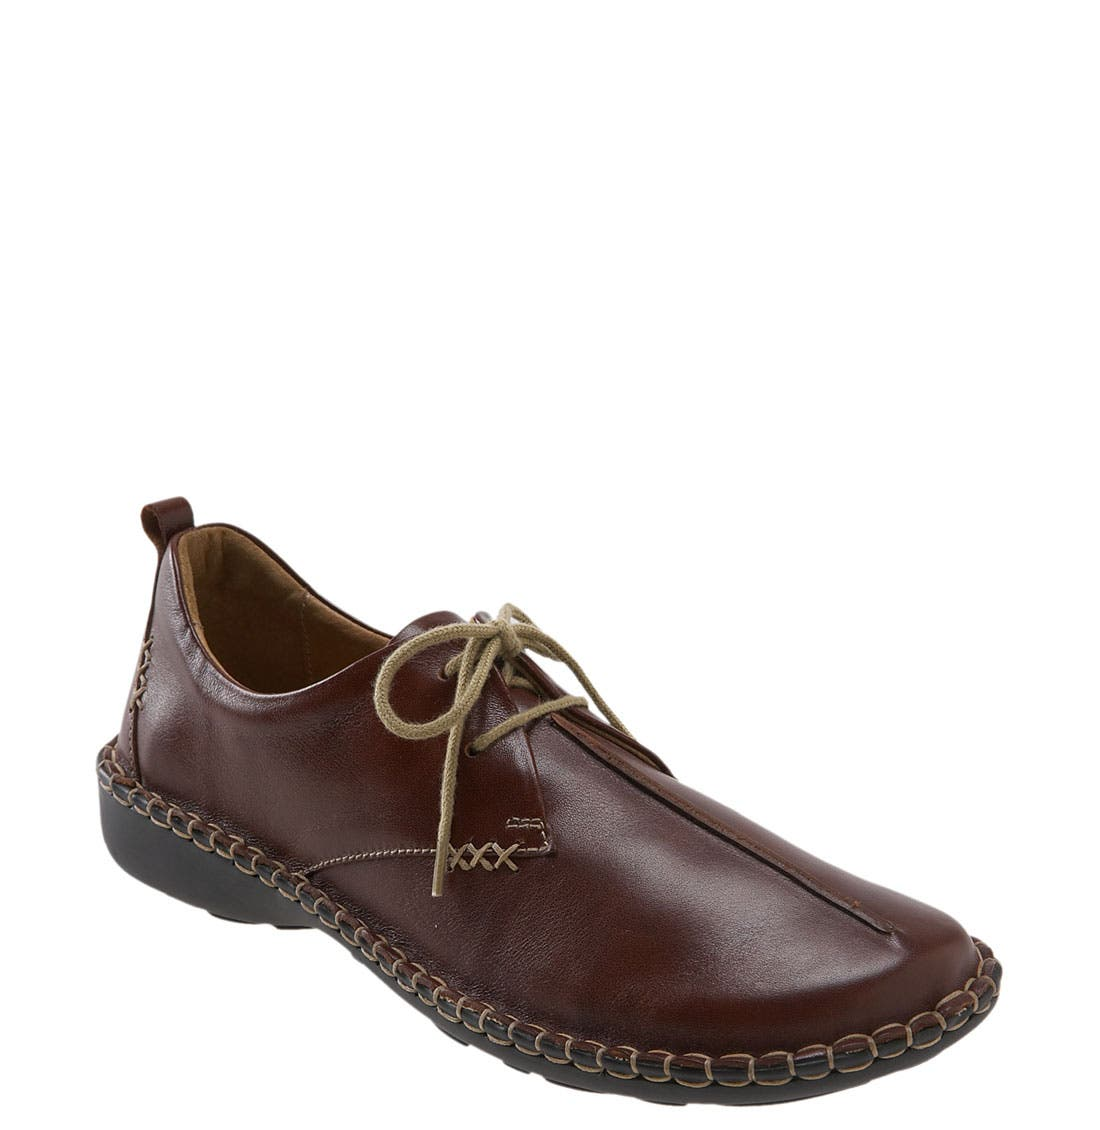 Raised center seam details the vamp of a casual two-eyelet oxford crafted from supple leather and fashioned with contrast stitching around the durable polyurethane sole. Style Name: Josef Seibel \\\'Lindsay\\\' Flat. Style Number: 251691 1. Available in stores.